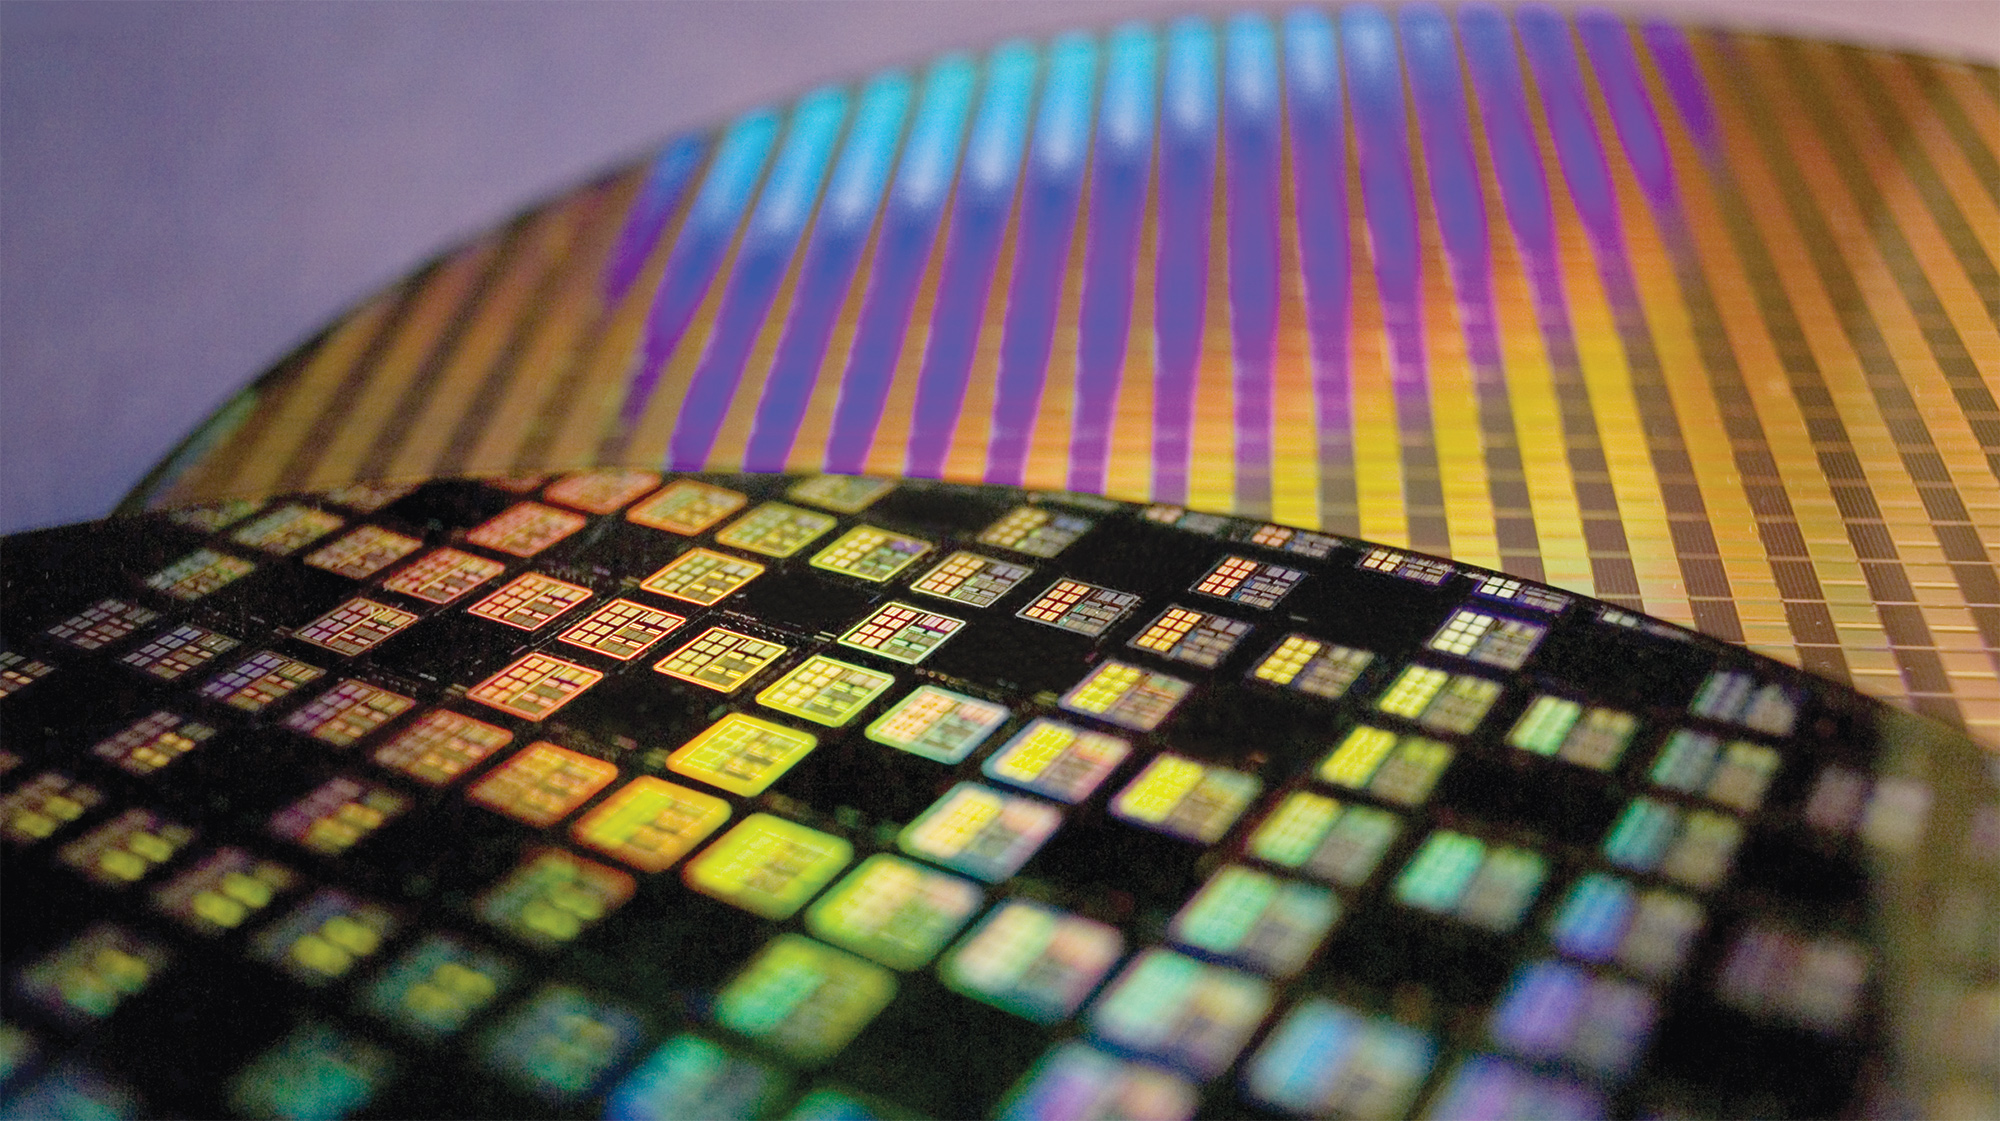 Samsung and TSMC Roadmaps: 8 and 6 nm Added, Looking at